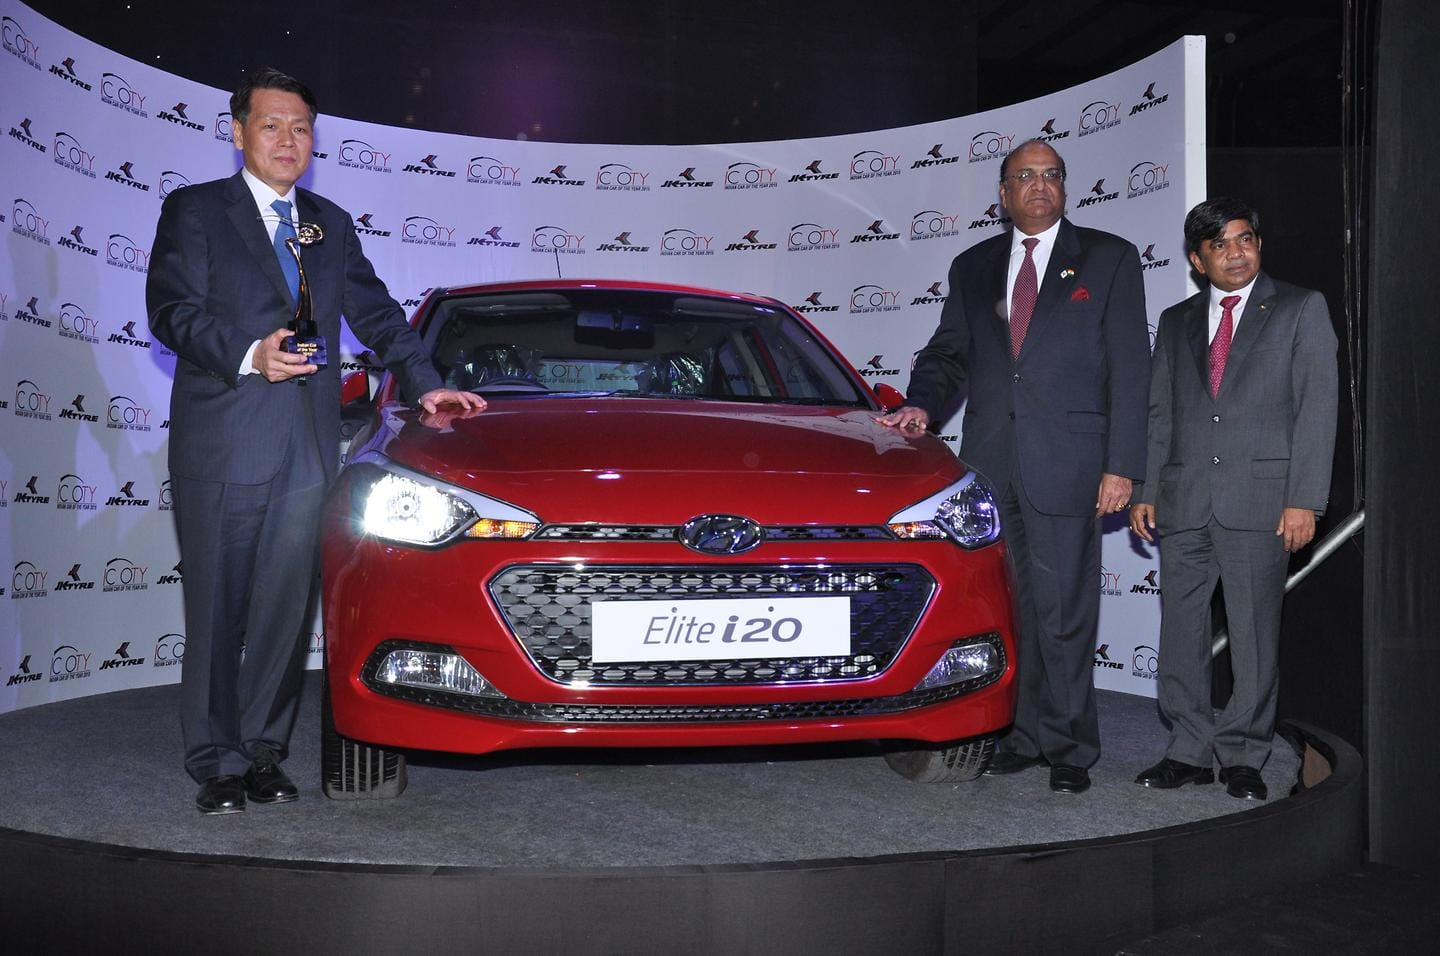 Hyundai Elite i20 wins Indian Car of the Year 2015 award (ICOTY)